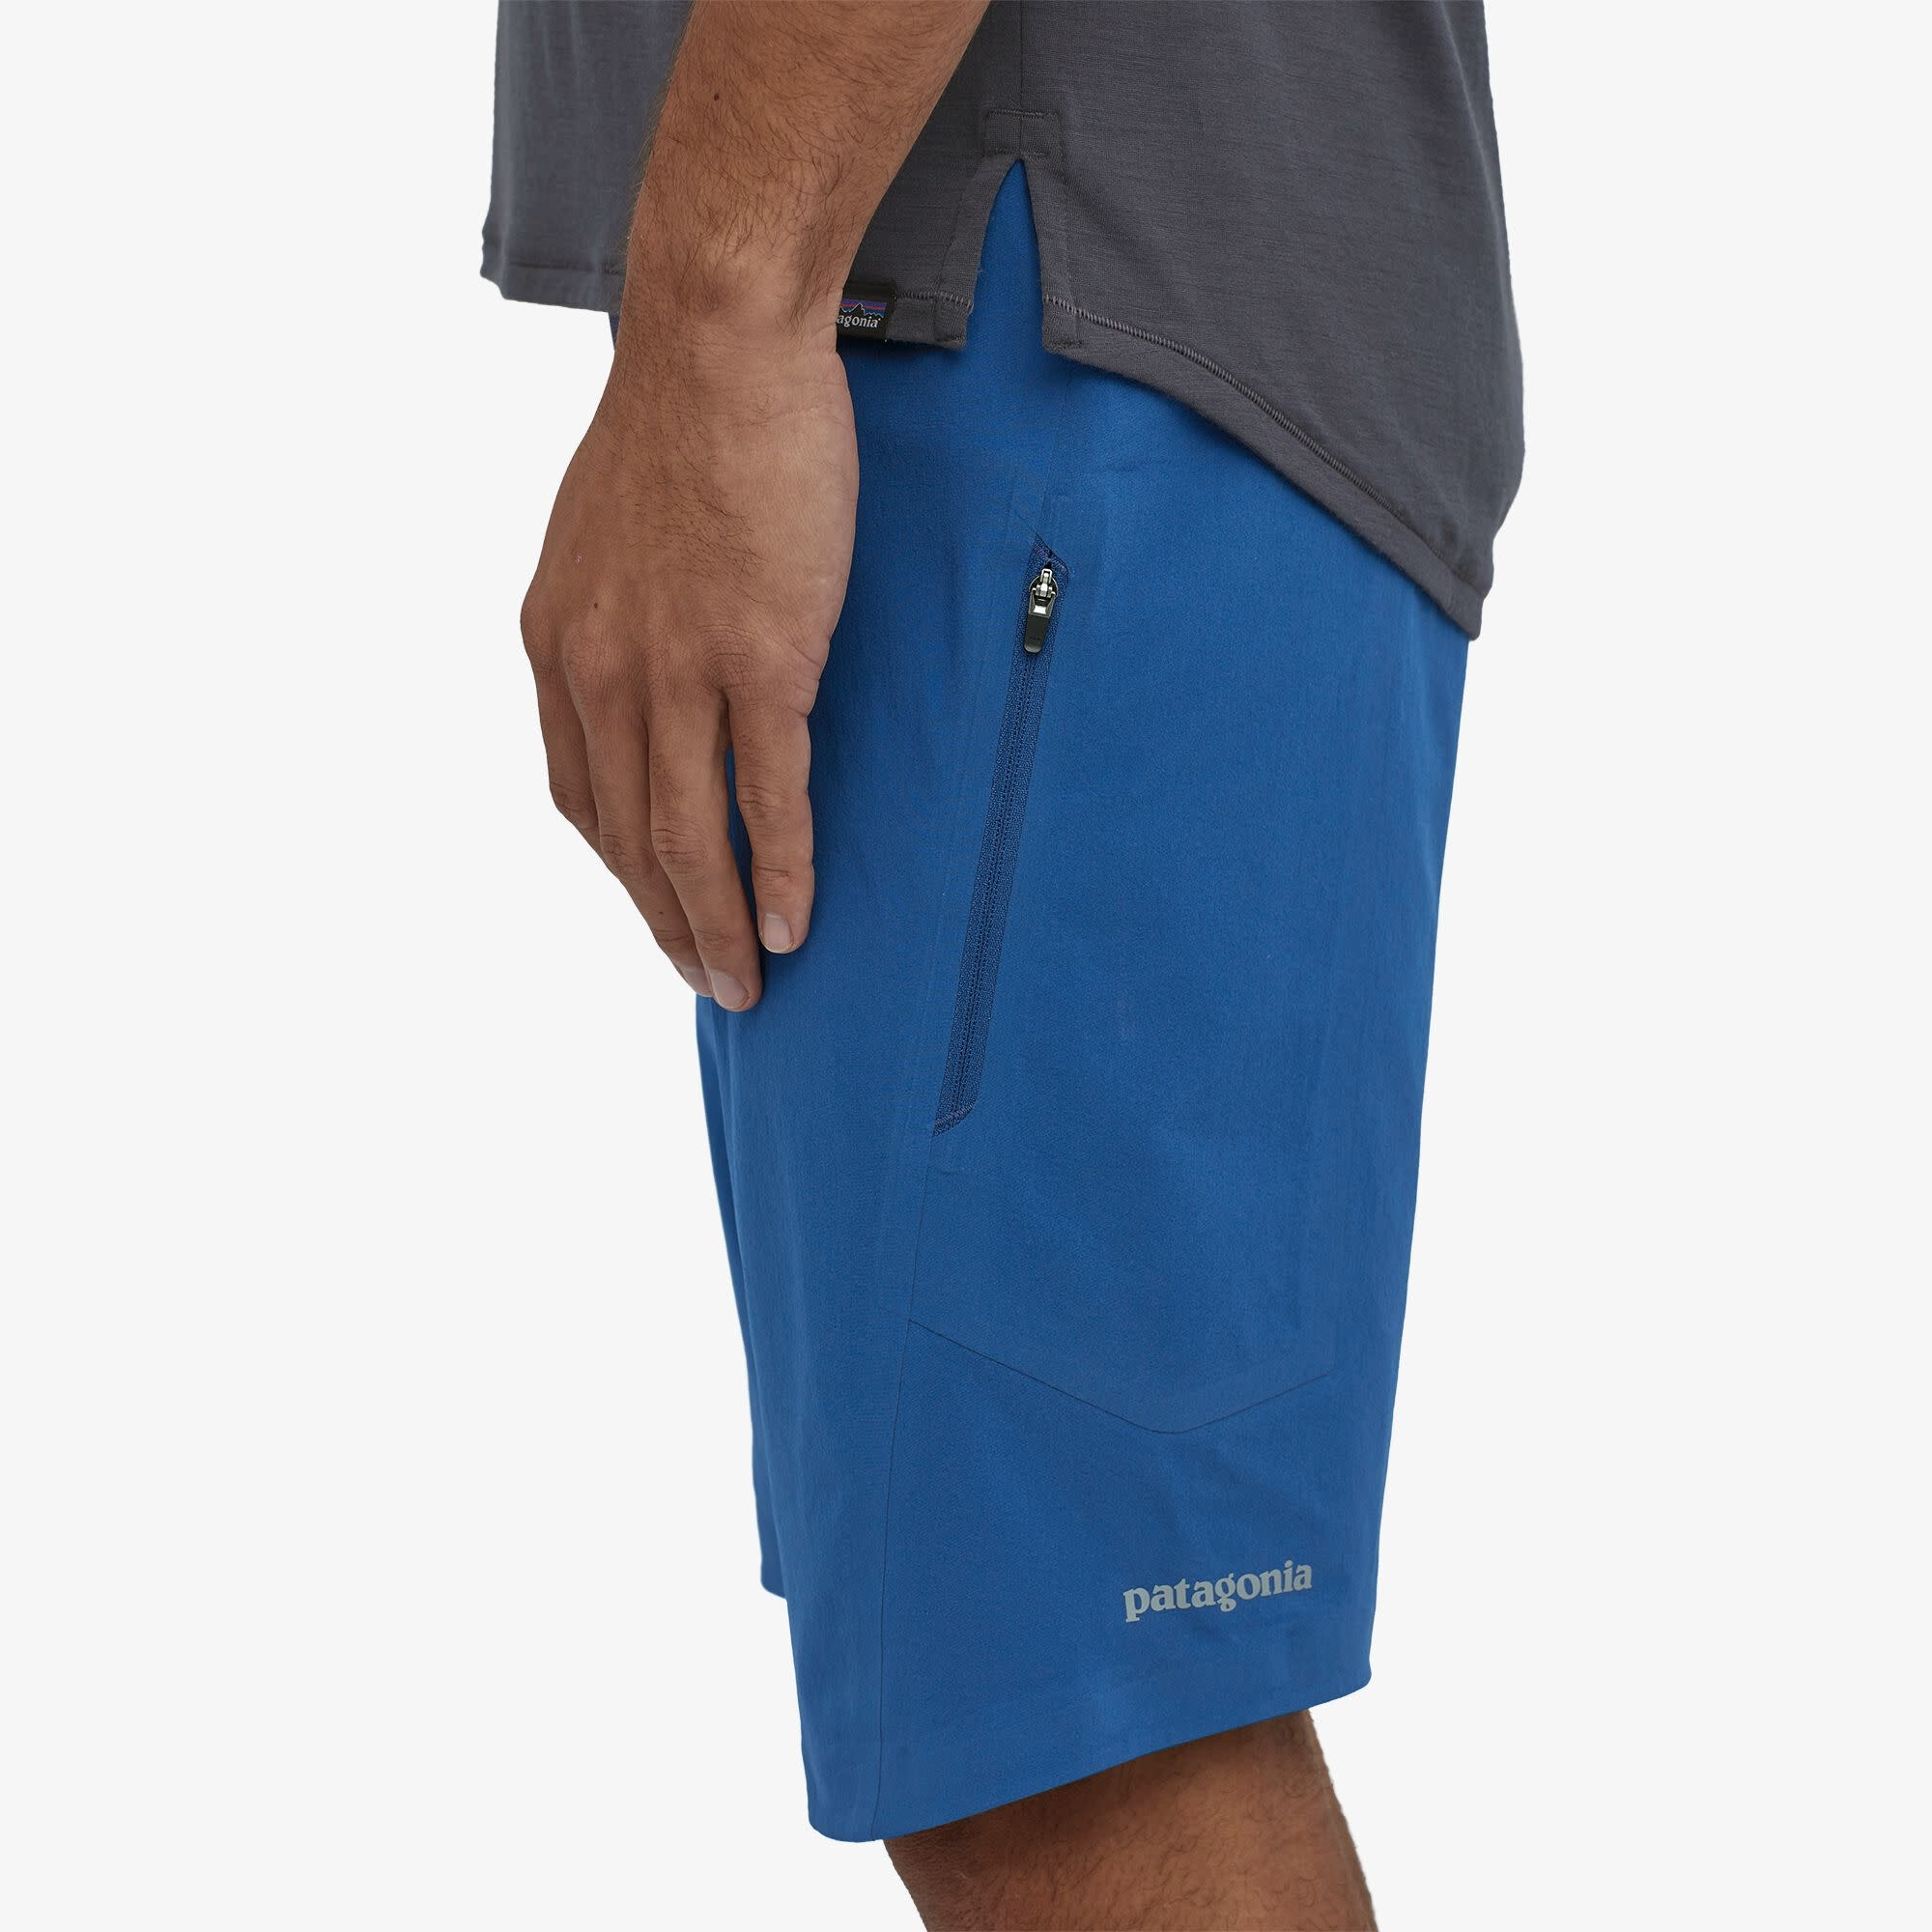 Patagonia Patagonia Men's Dirt Roamer Bike Short - 11 1/2""